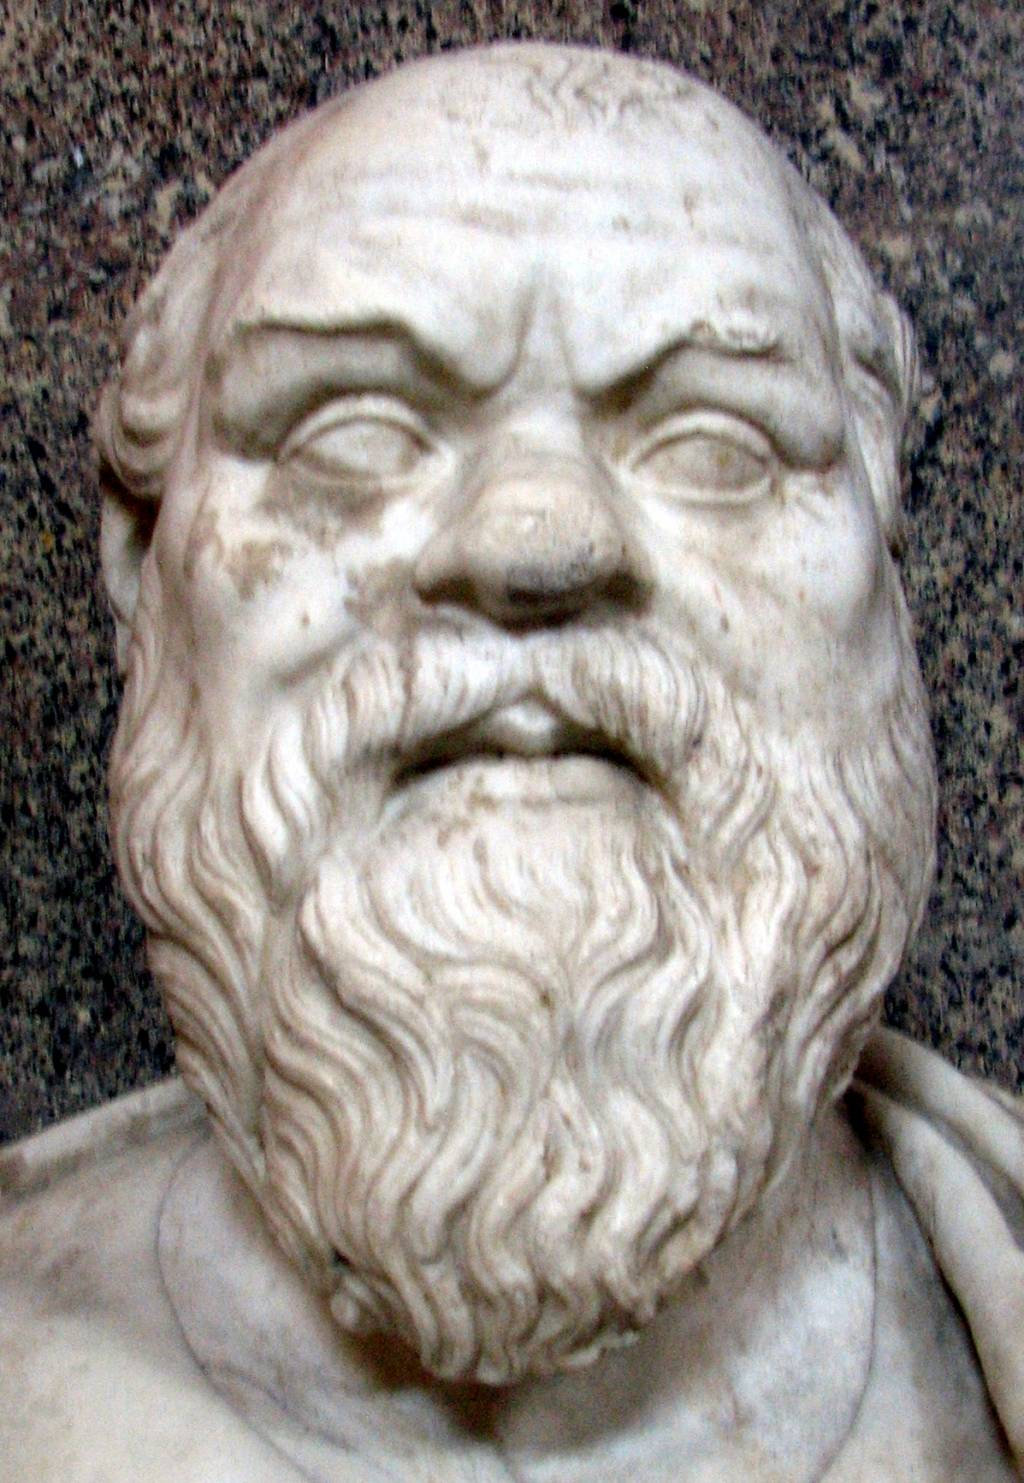 Essay on Comparing Socrates, Plato, and Aristotle